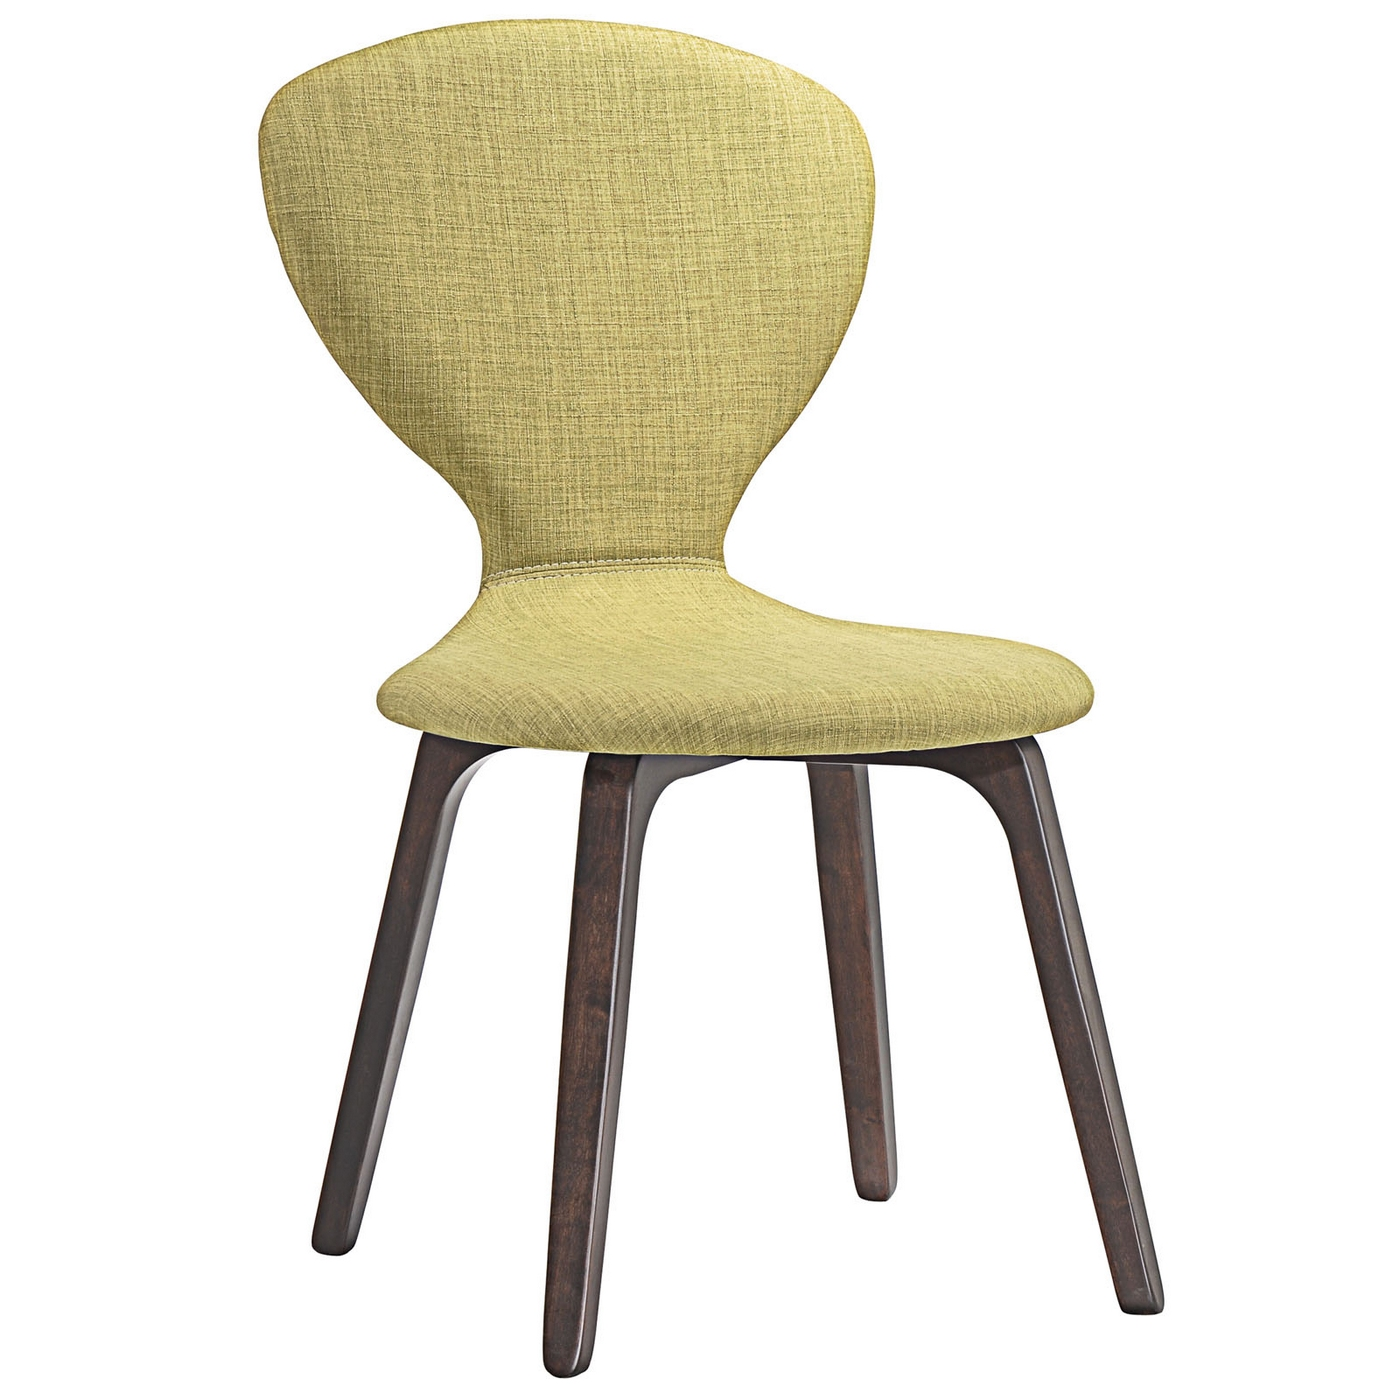 modern green dining chairs retro gumtree melbourne tempest vintage curvy wood side chair with